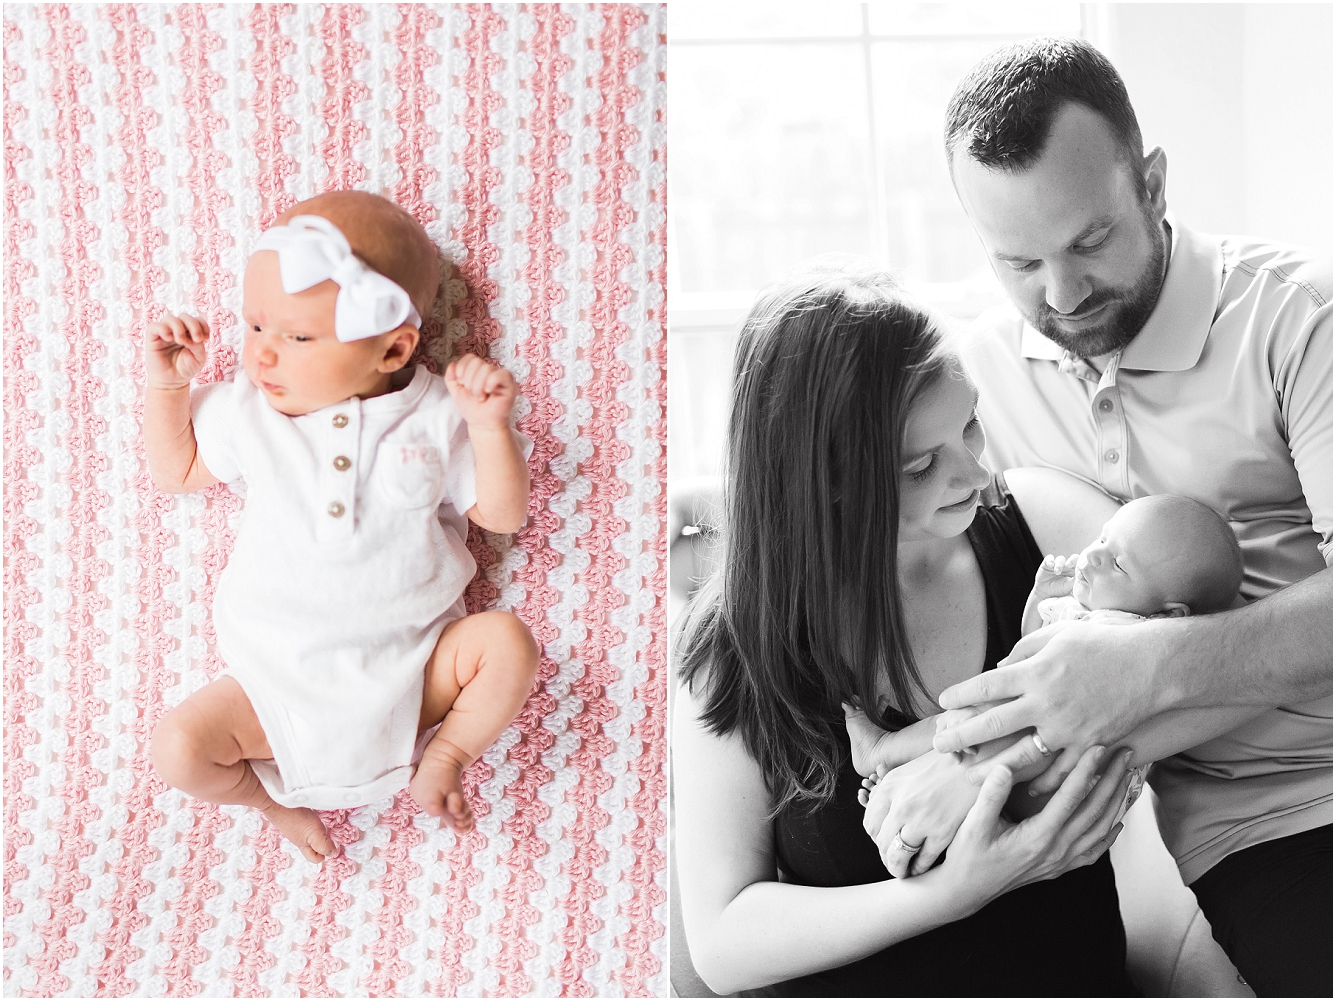 Katy Tx Indoor Newborn Lifestyle Photographer_11